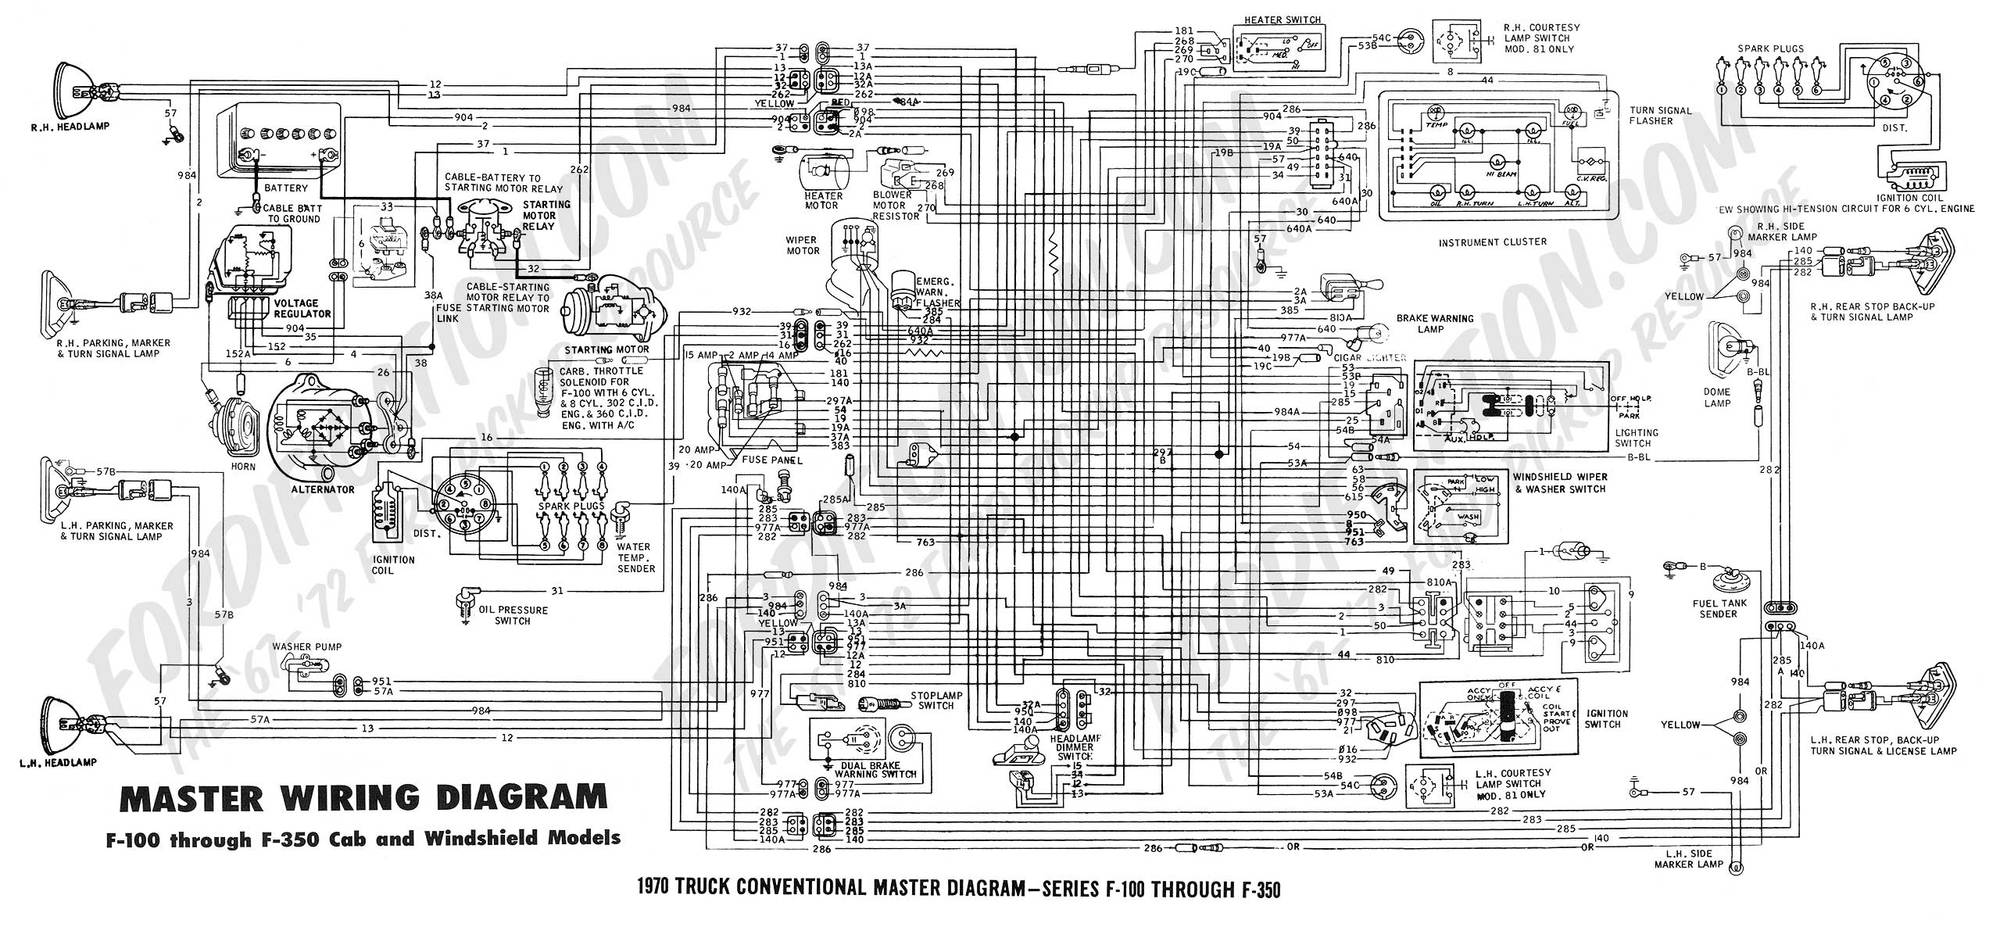 80 wiring_diagram_70_master_77b0650ff5823fc998e119c71f59ee29a8fbe89a reznor heater wiring schematic efcaviation com goodman furnace wiring diagram at letsshop.co